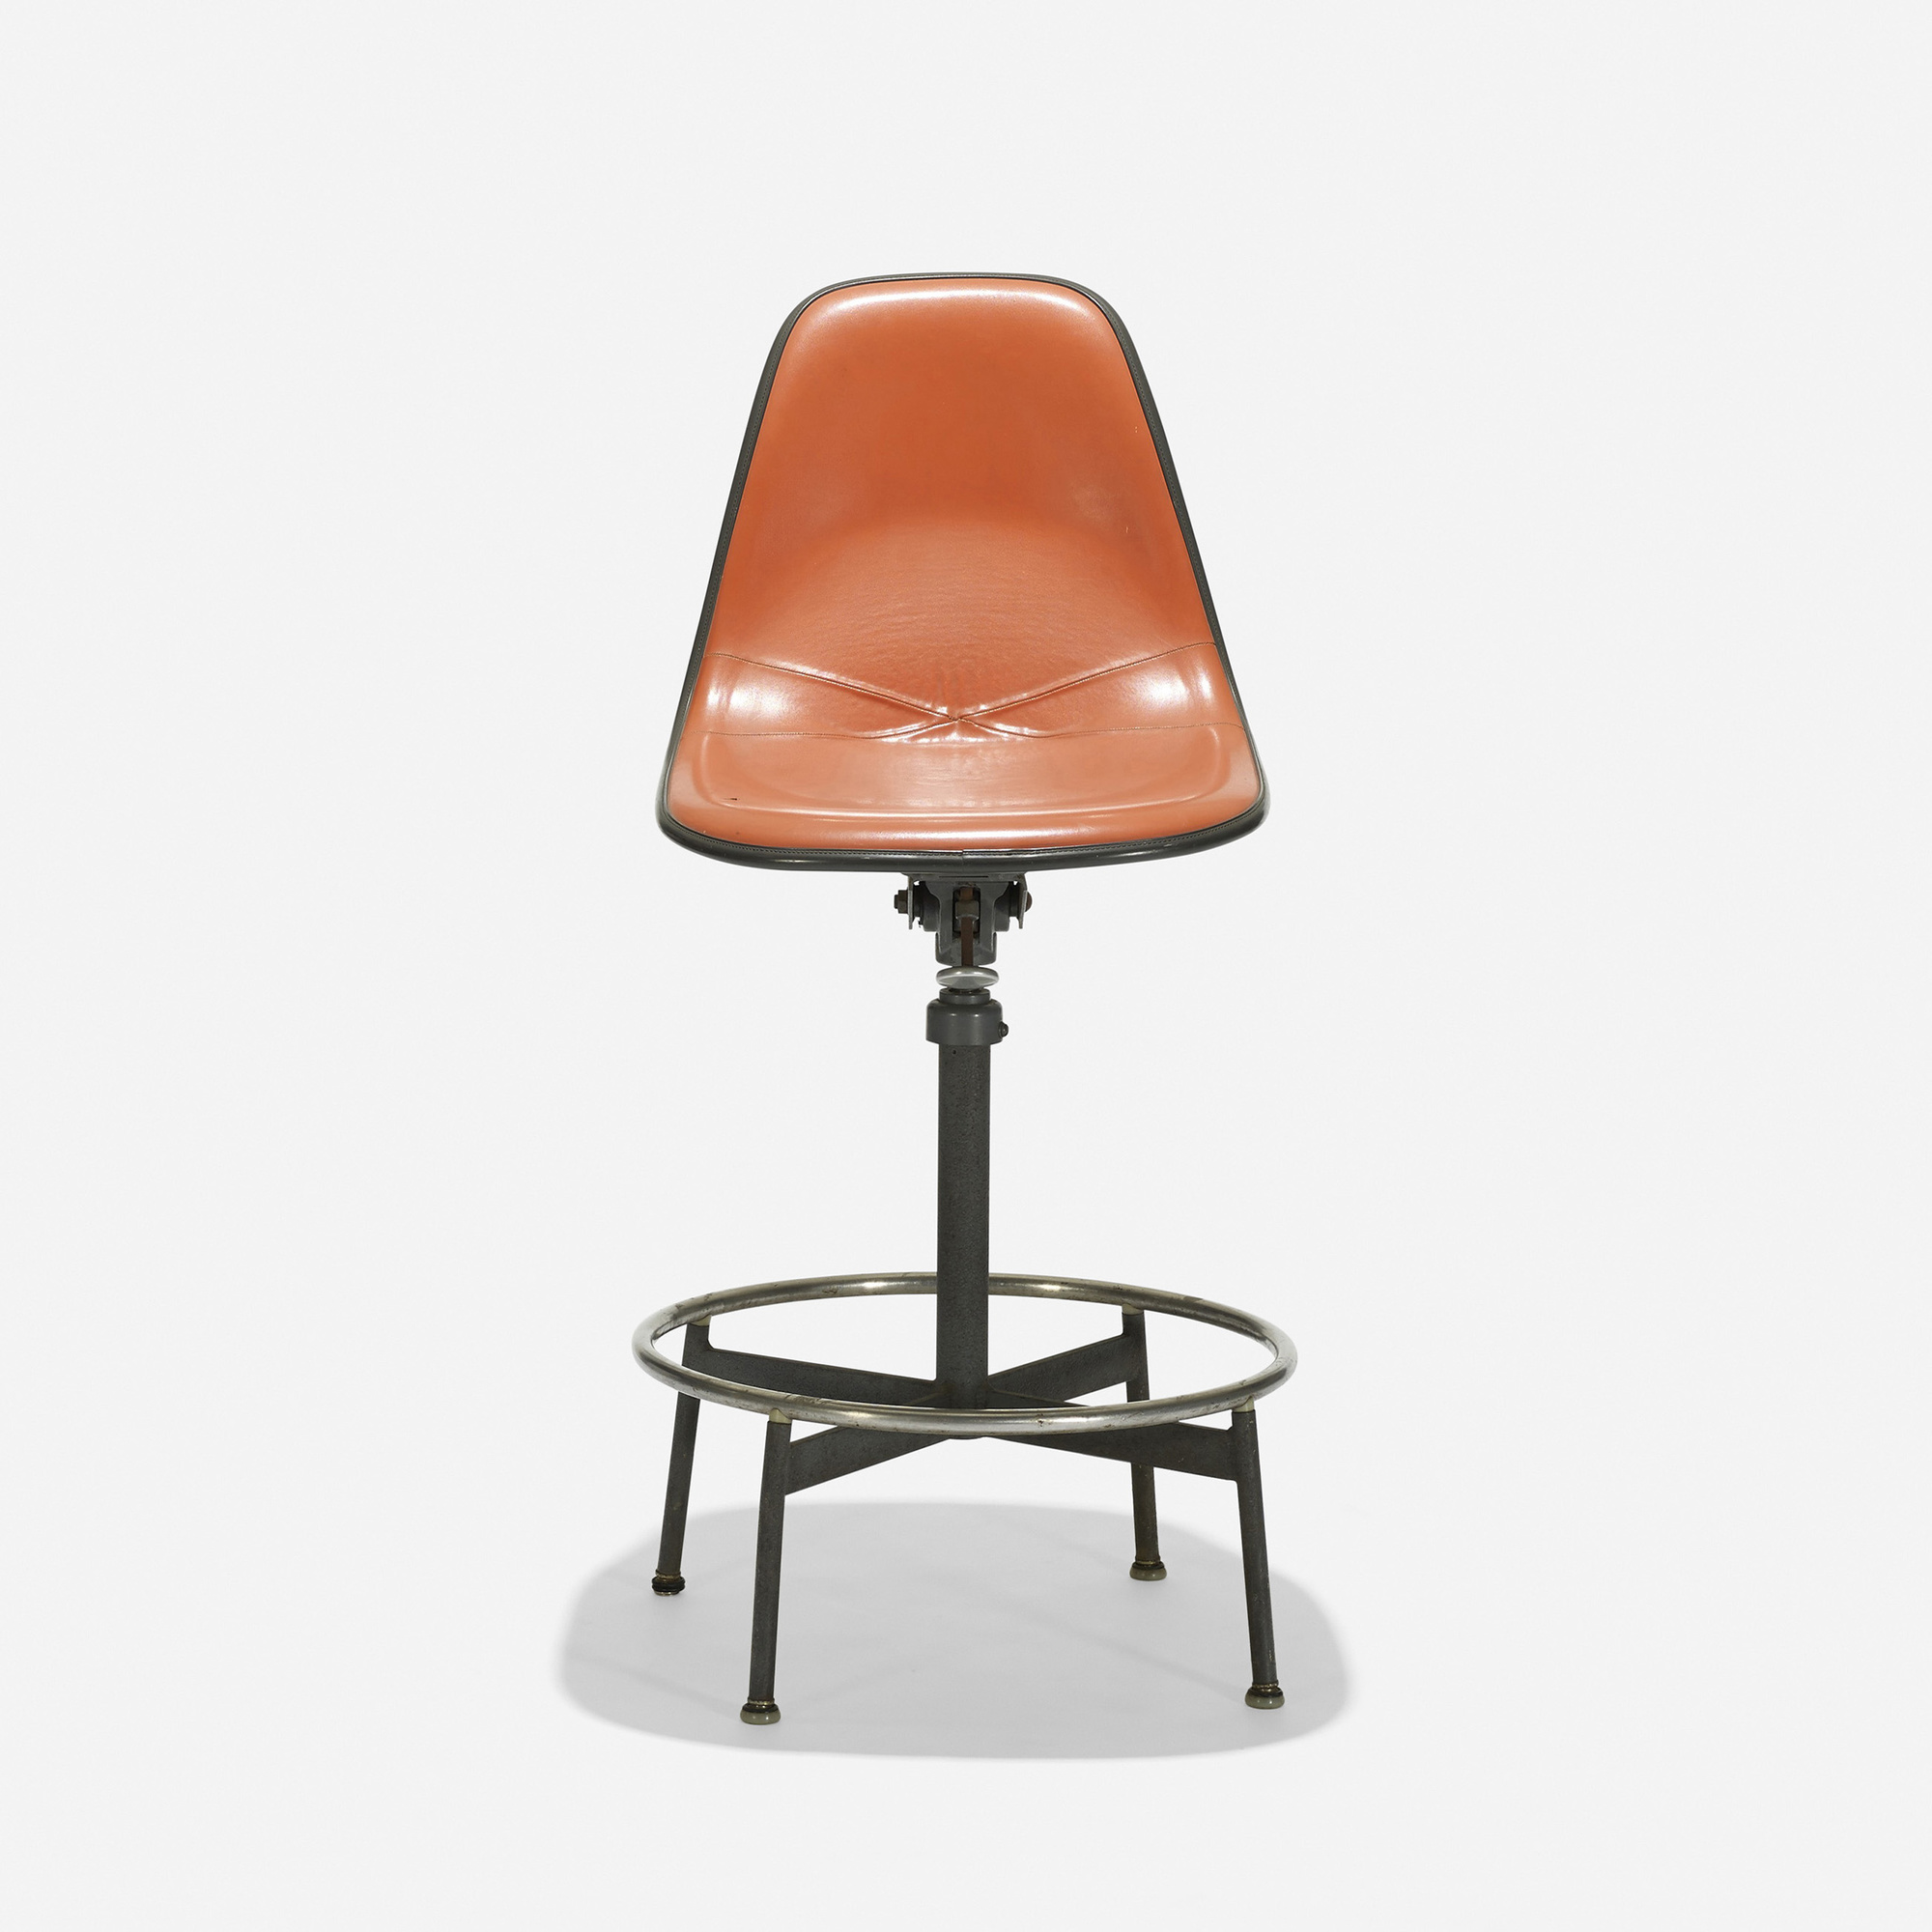 203 Charles and Ray Eames / Drafting chair model 622TS-1 (1  sc 1 st  Wright Auctions & 203: CHARLES AND RAY EAMES Drafting chair model 622TS-1 u003c Eames ...